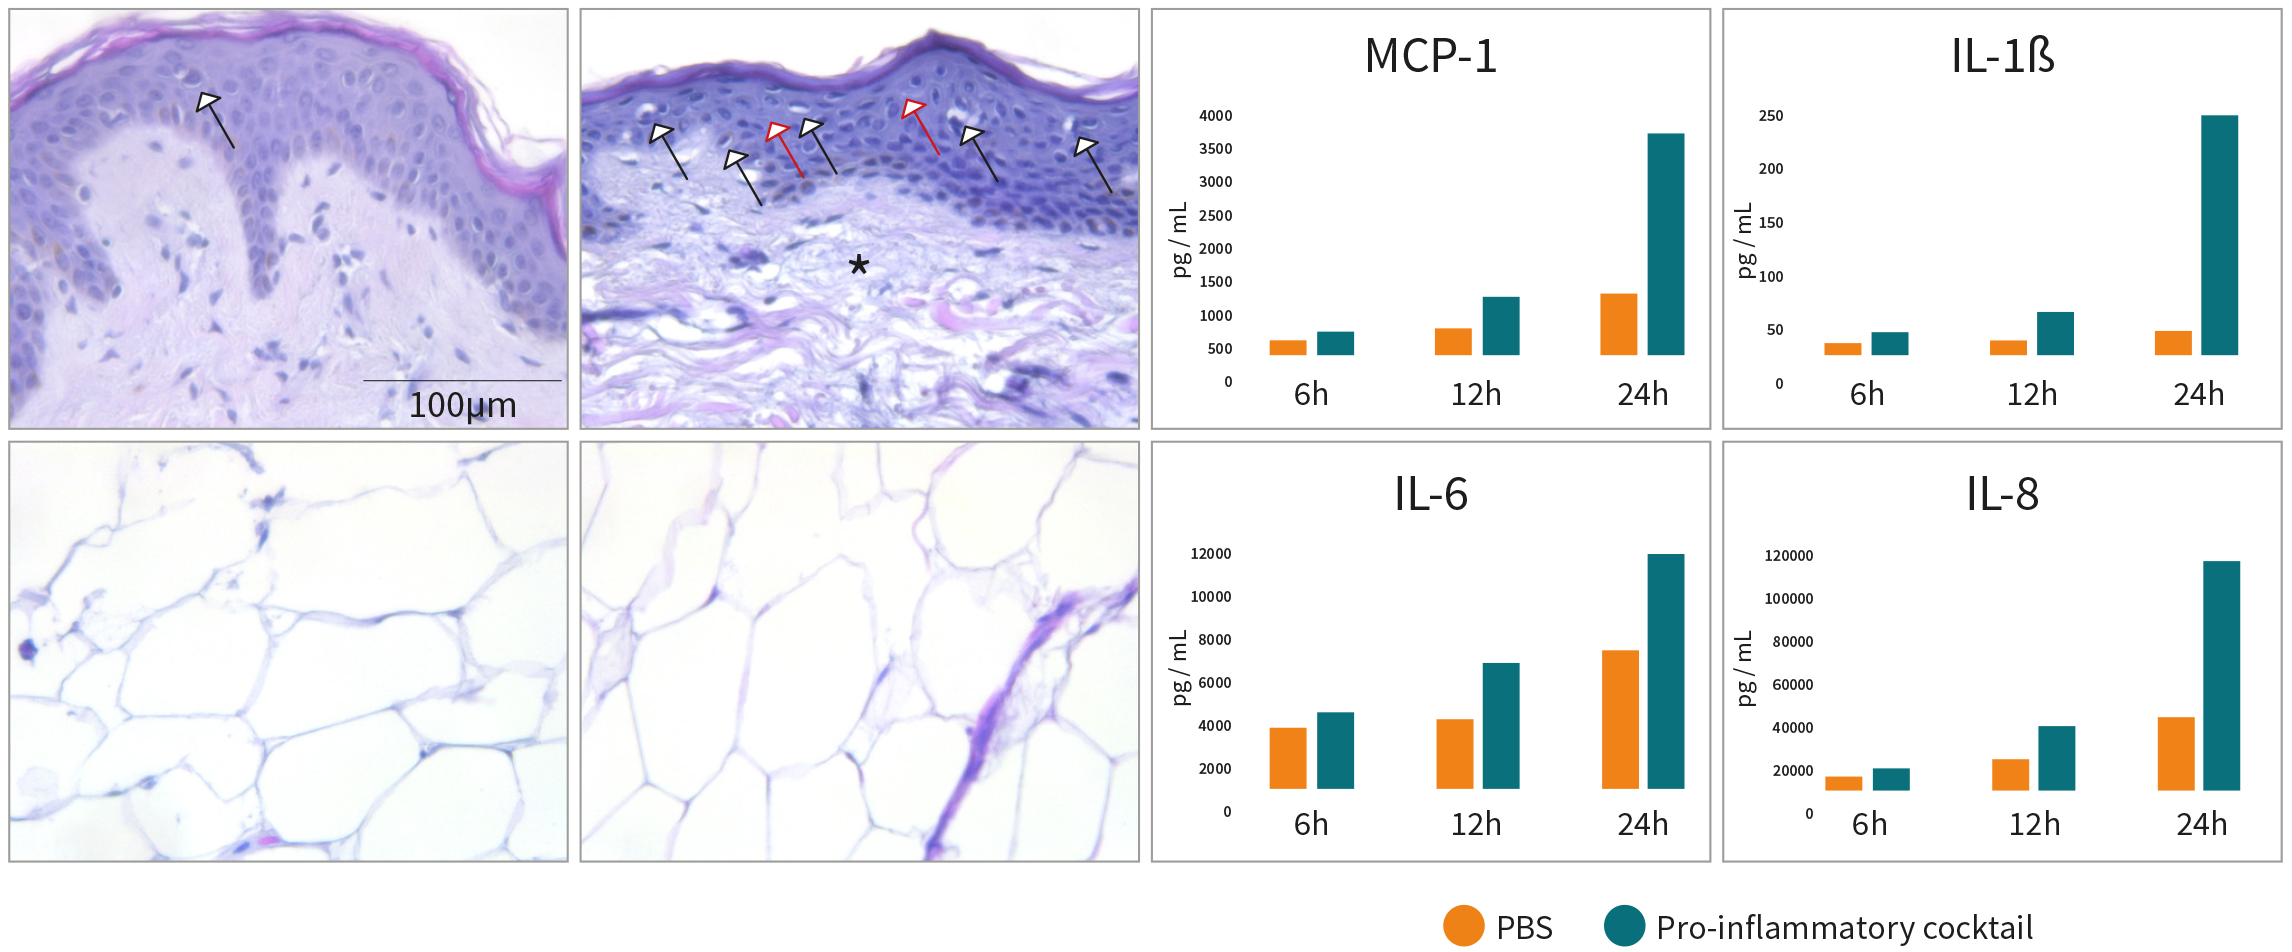 Histology photos and graphics showing local inflammatory reactions